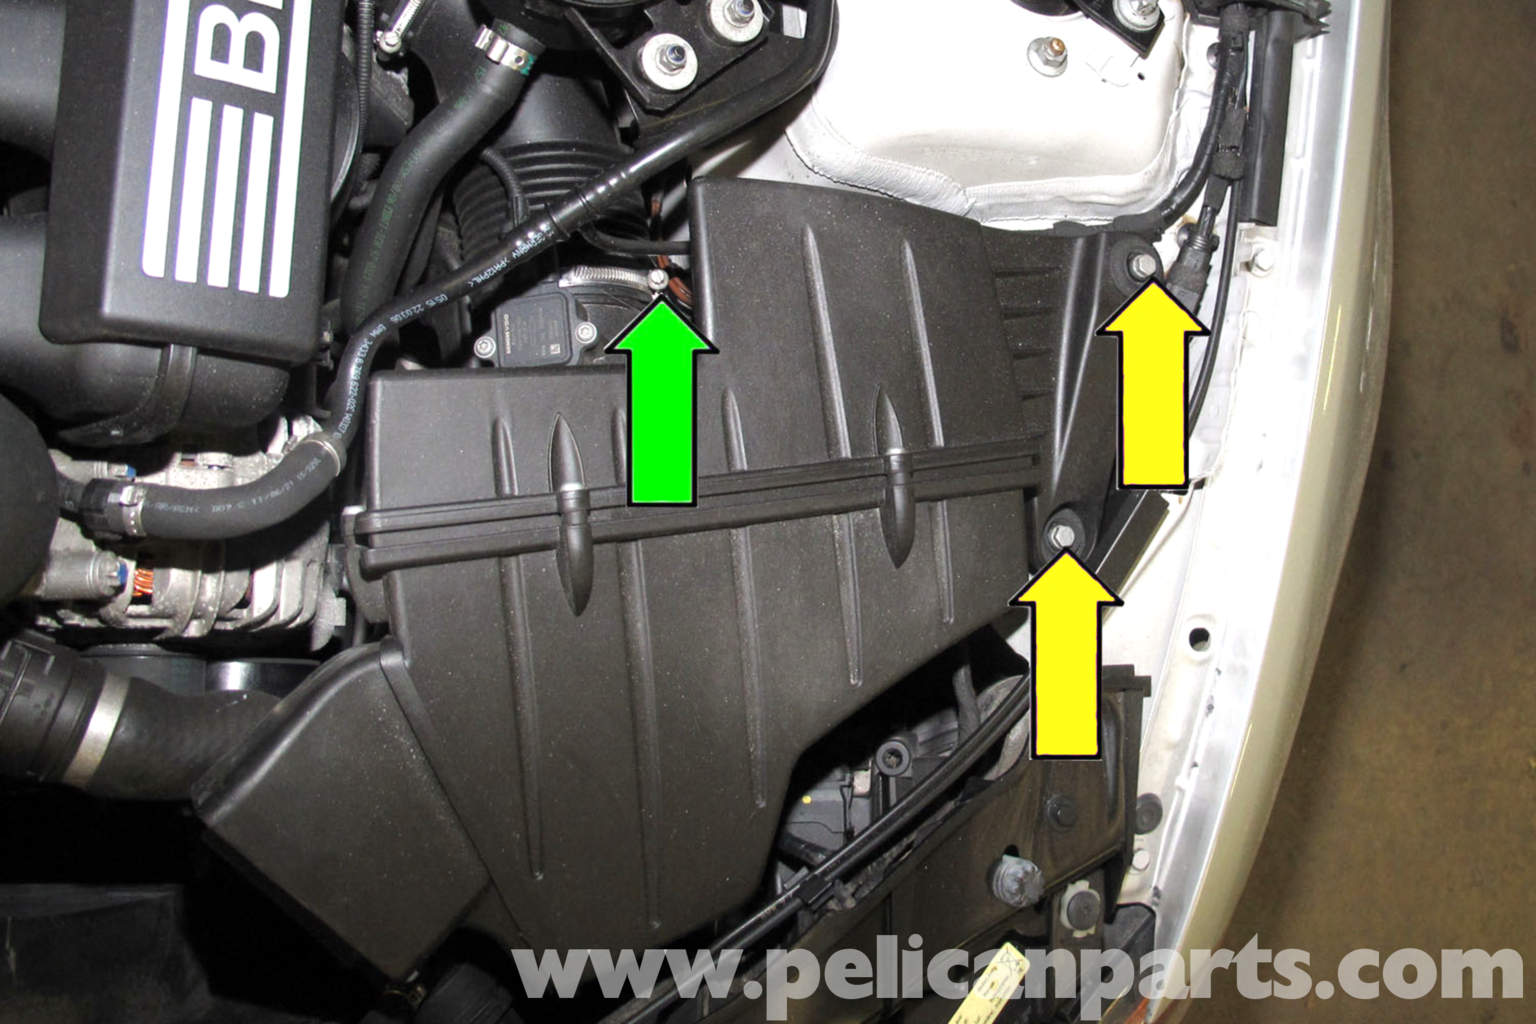 335xi Fuse Diagram Bmw E90 Air Filter Replacement E91 E92 E93 Pelican